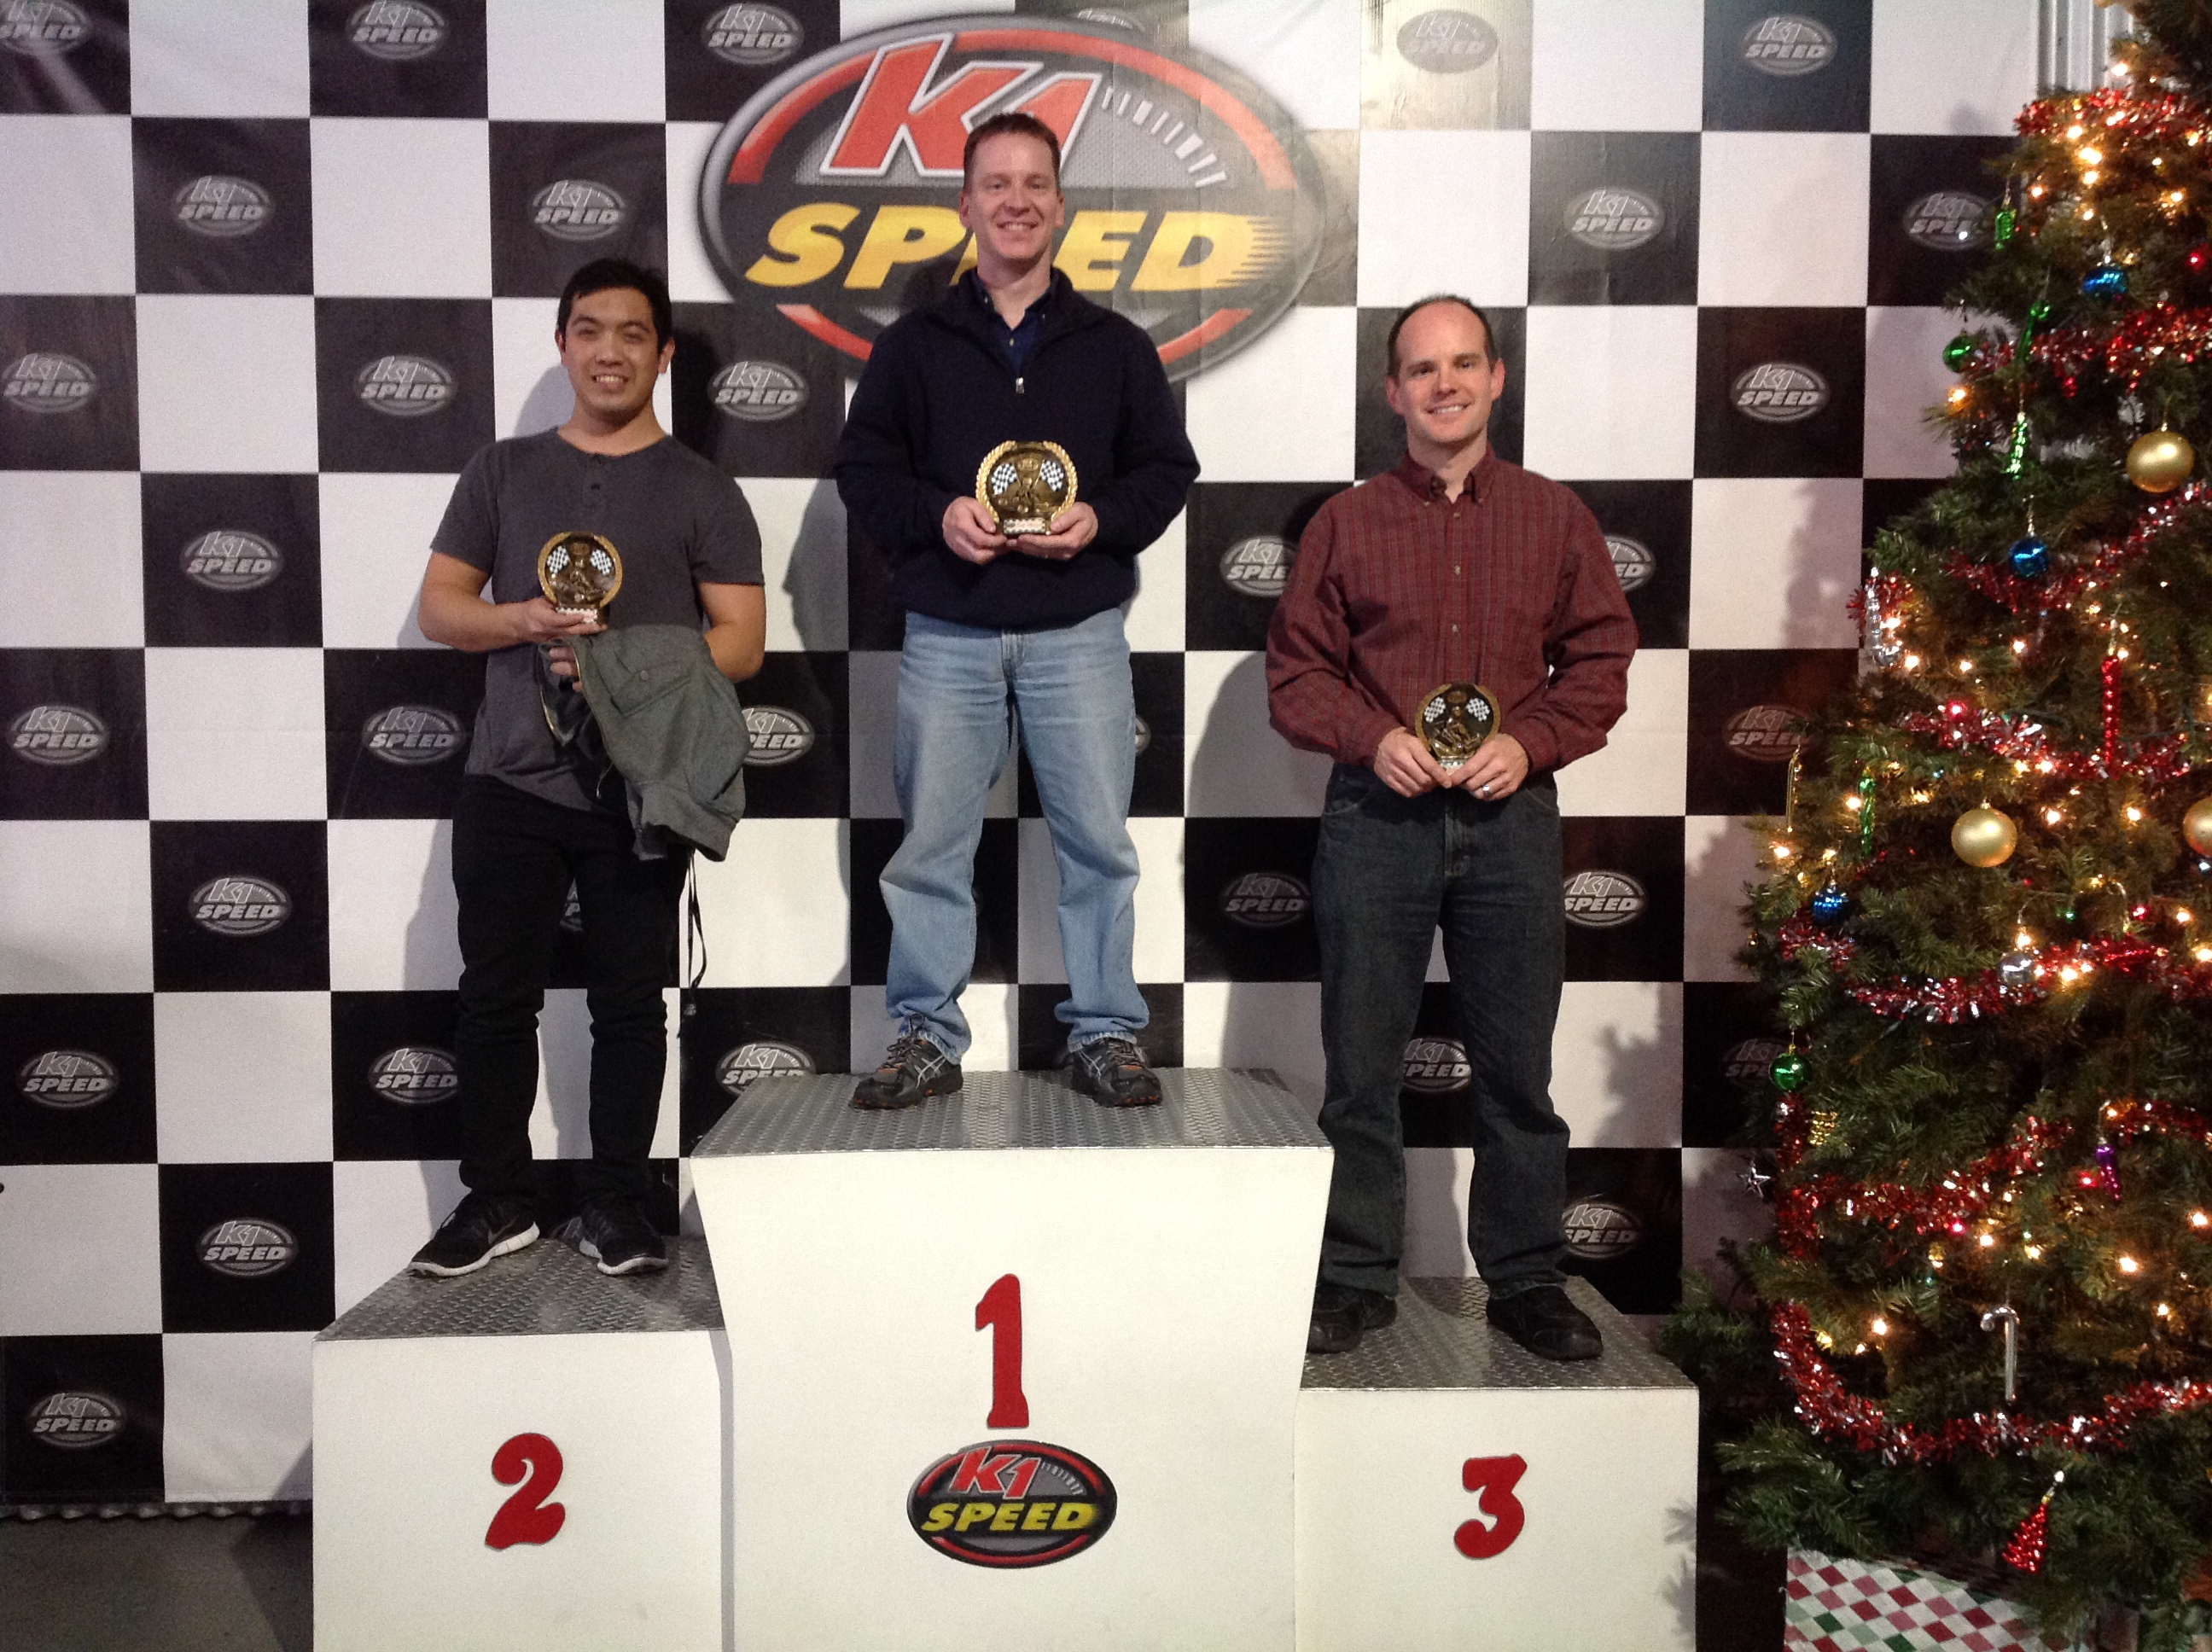 Winners at K1 Speed